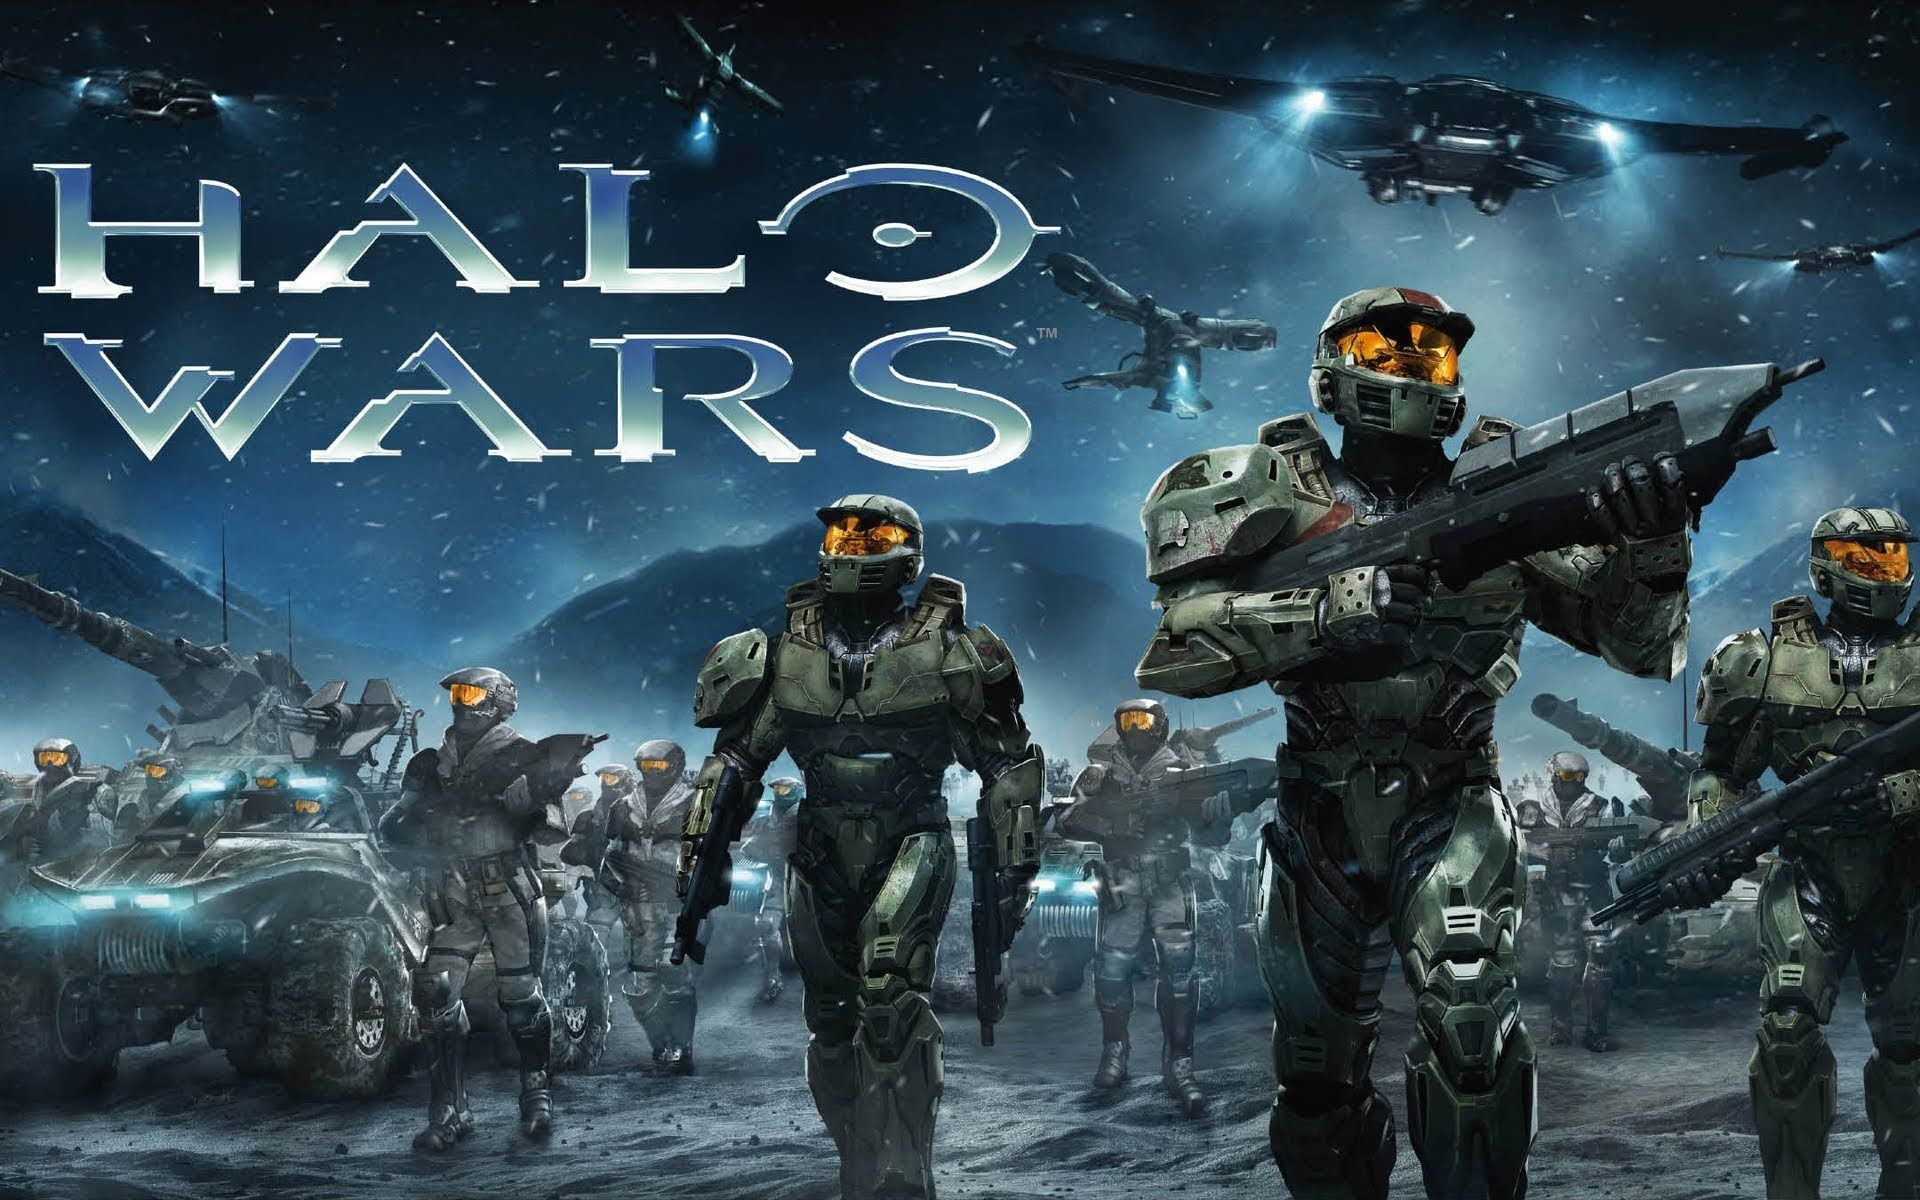 Halo Wars joins Xbox One backwards compatibility - but only